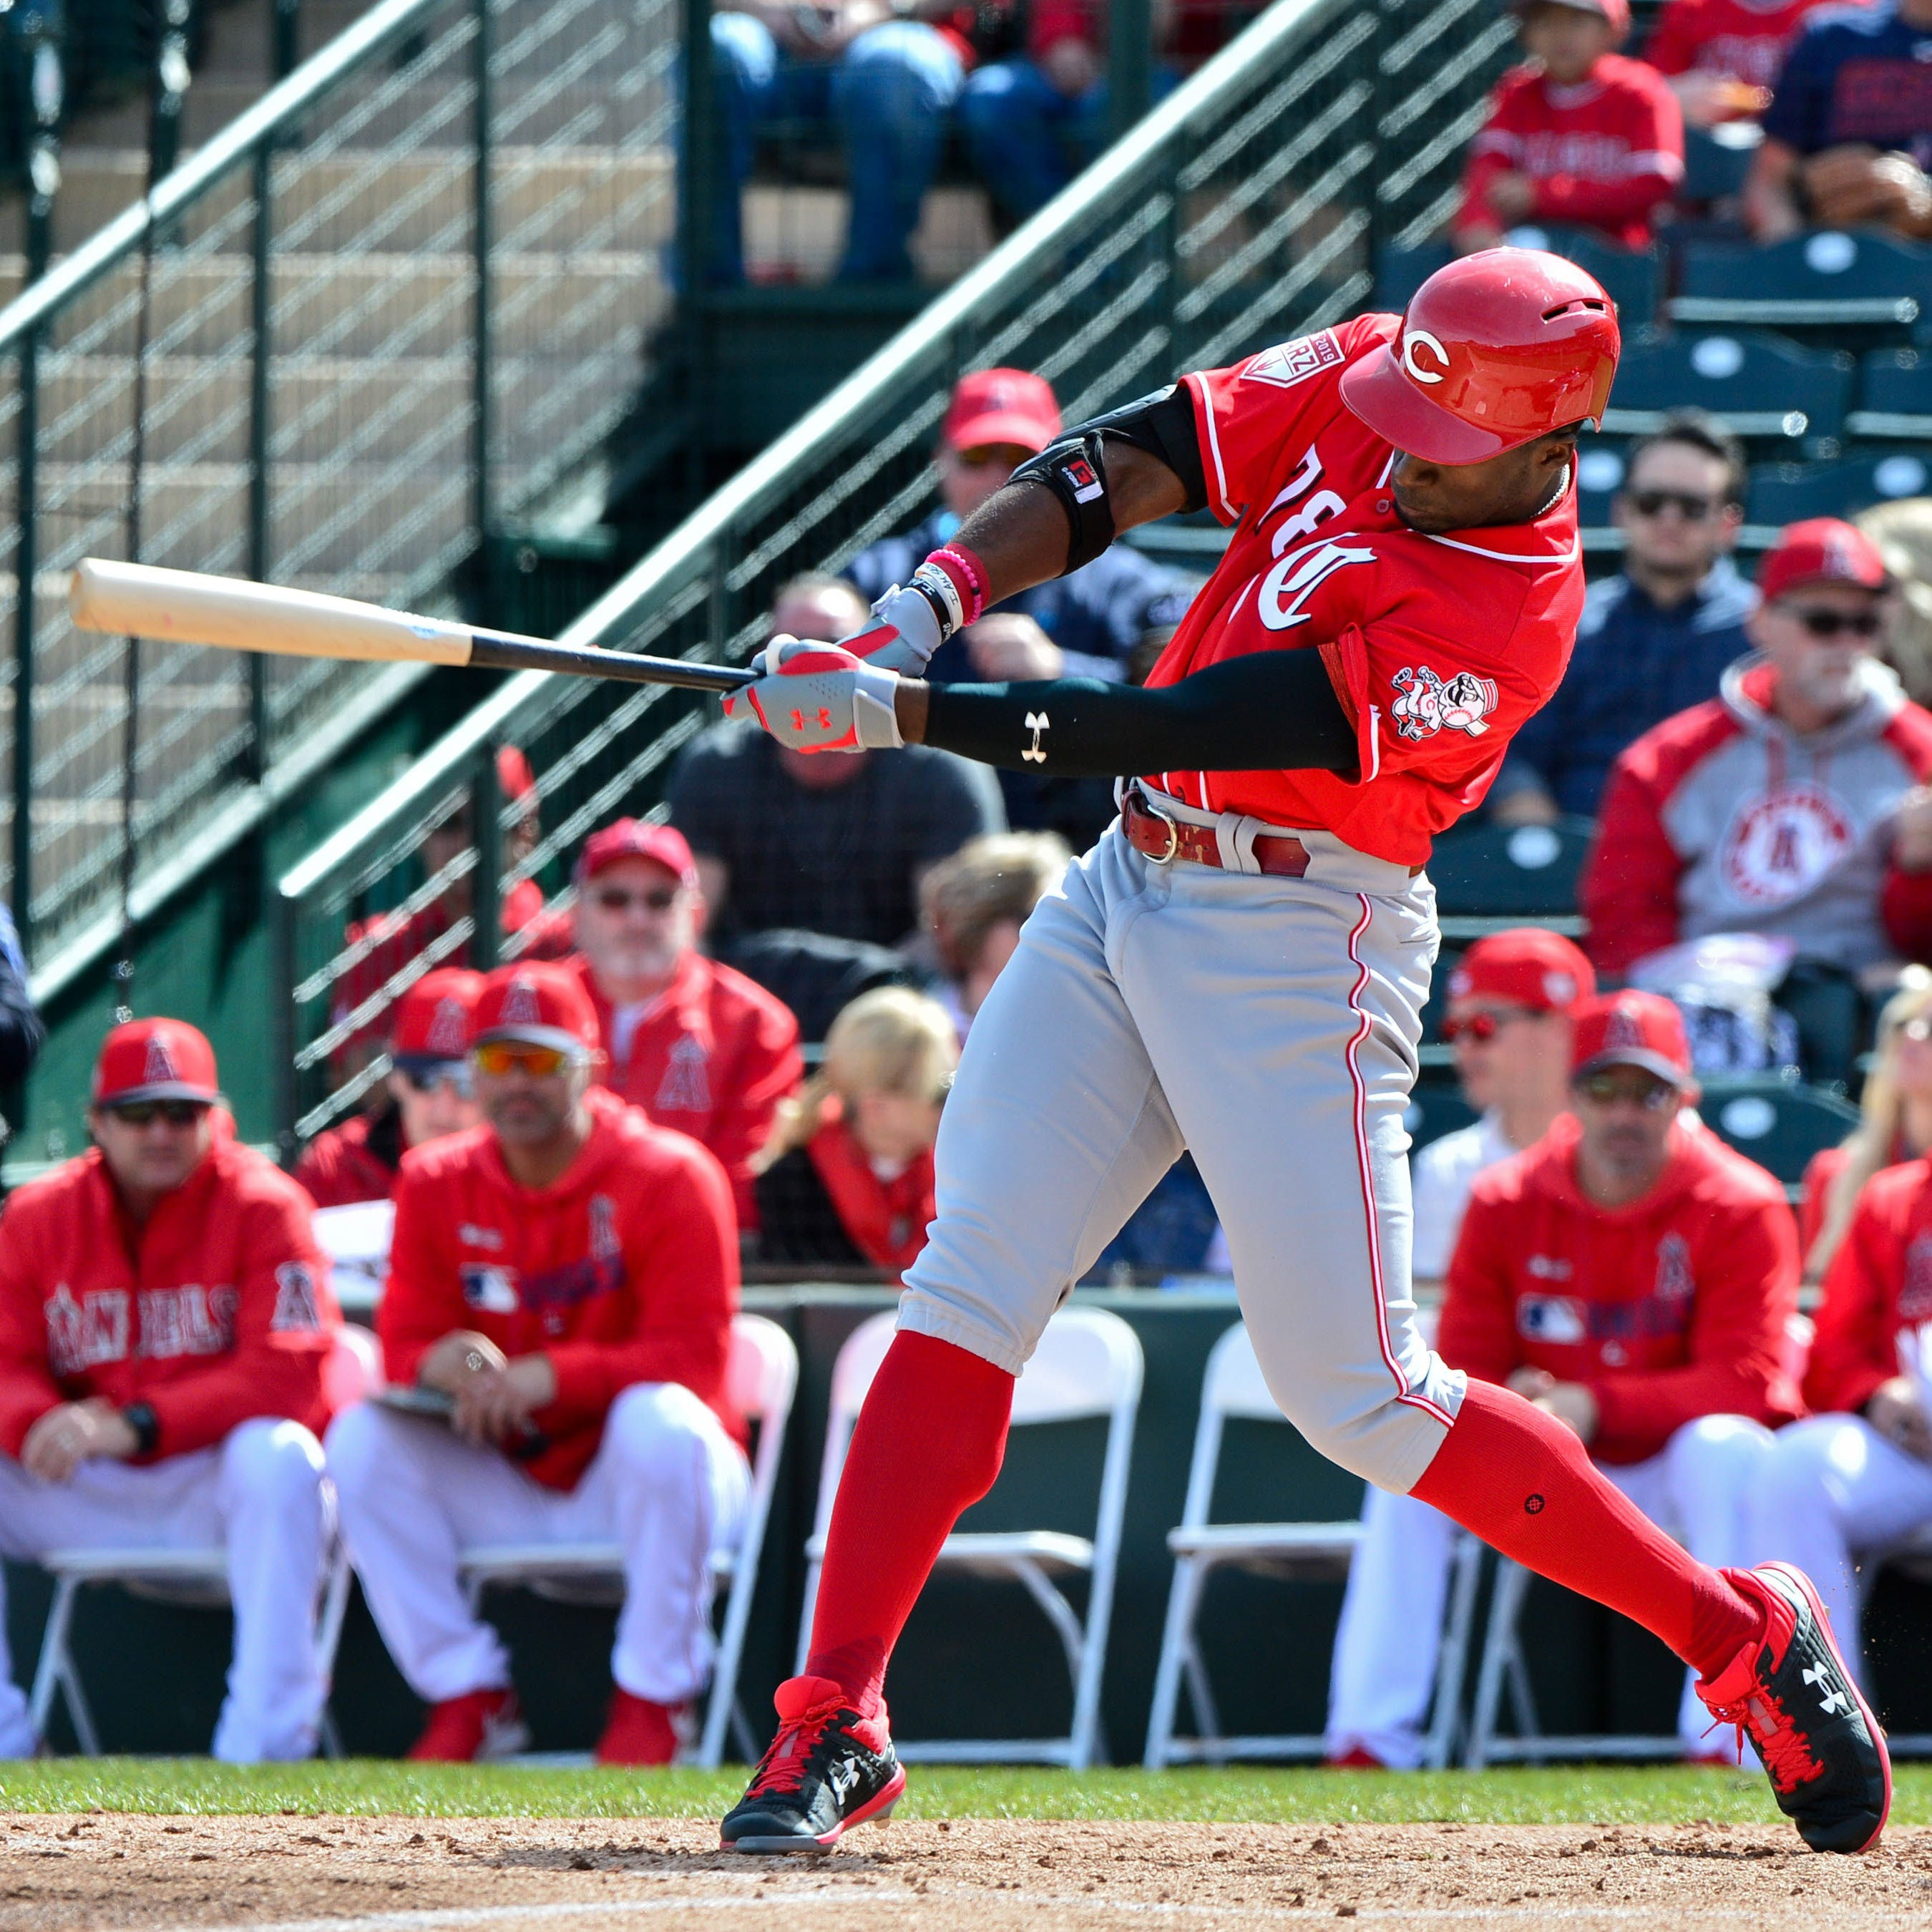 Trammell is the youngest and one of the most talented players in Cincinnati Reds camp